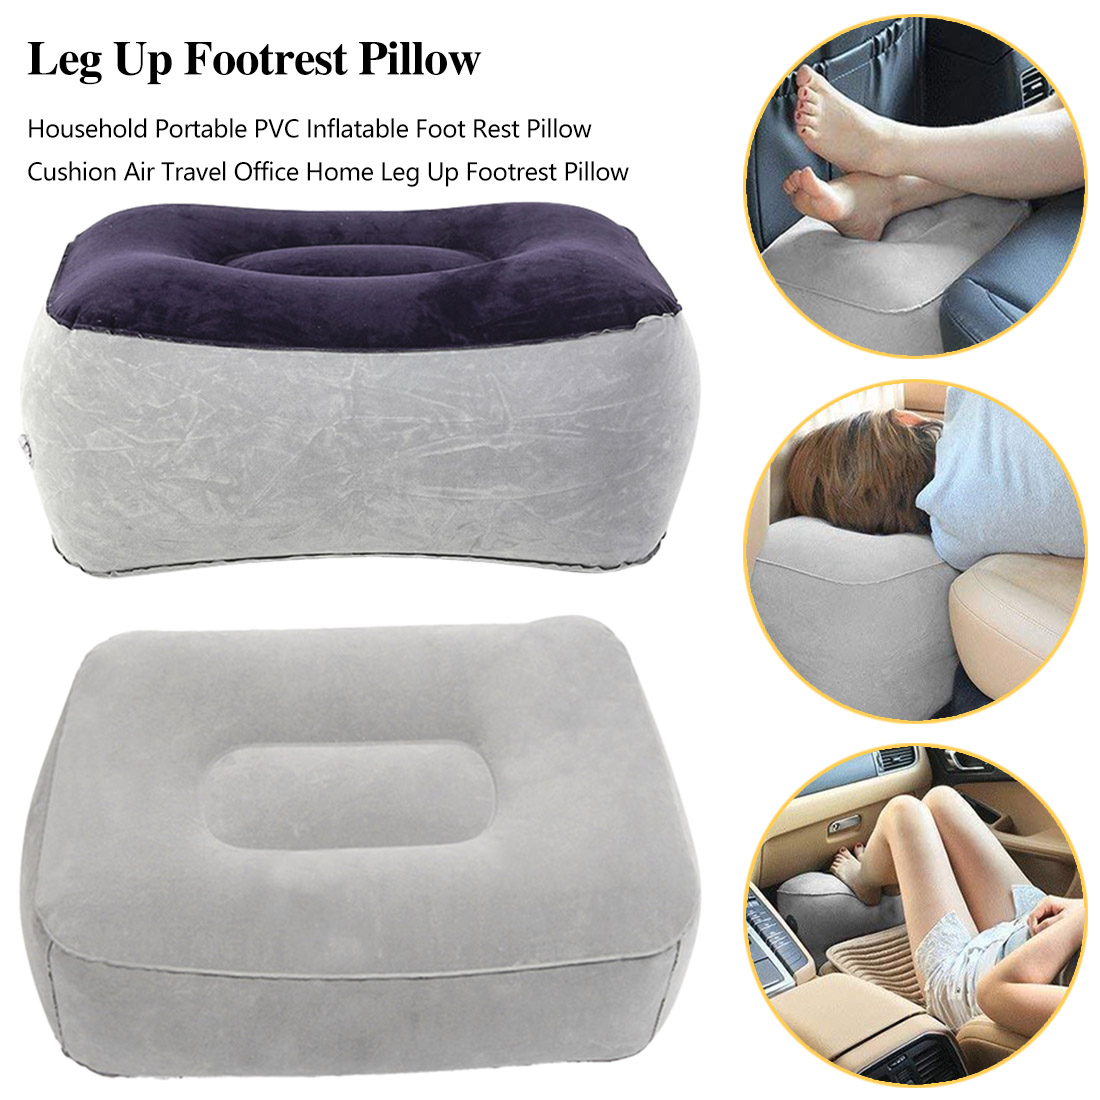 Soft Footrest Pillow PVC Inflatable Foot Rest Pillow Cushion Air Travel Office Home Leg Up Relaxing Feet Tool